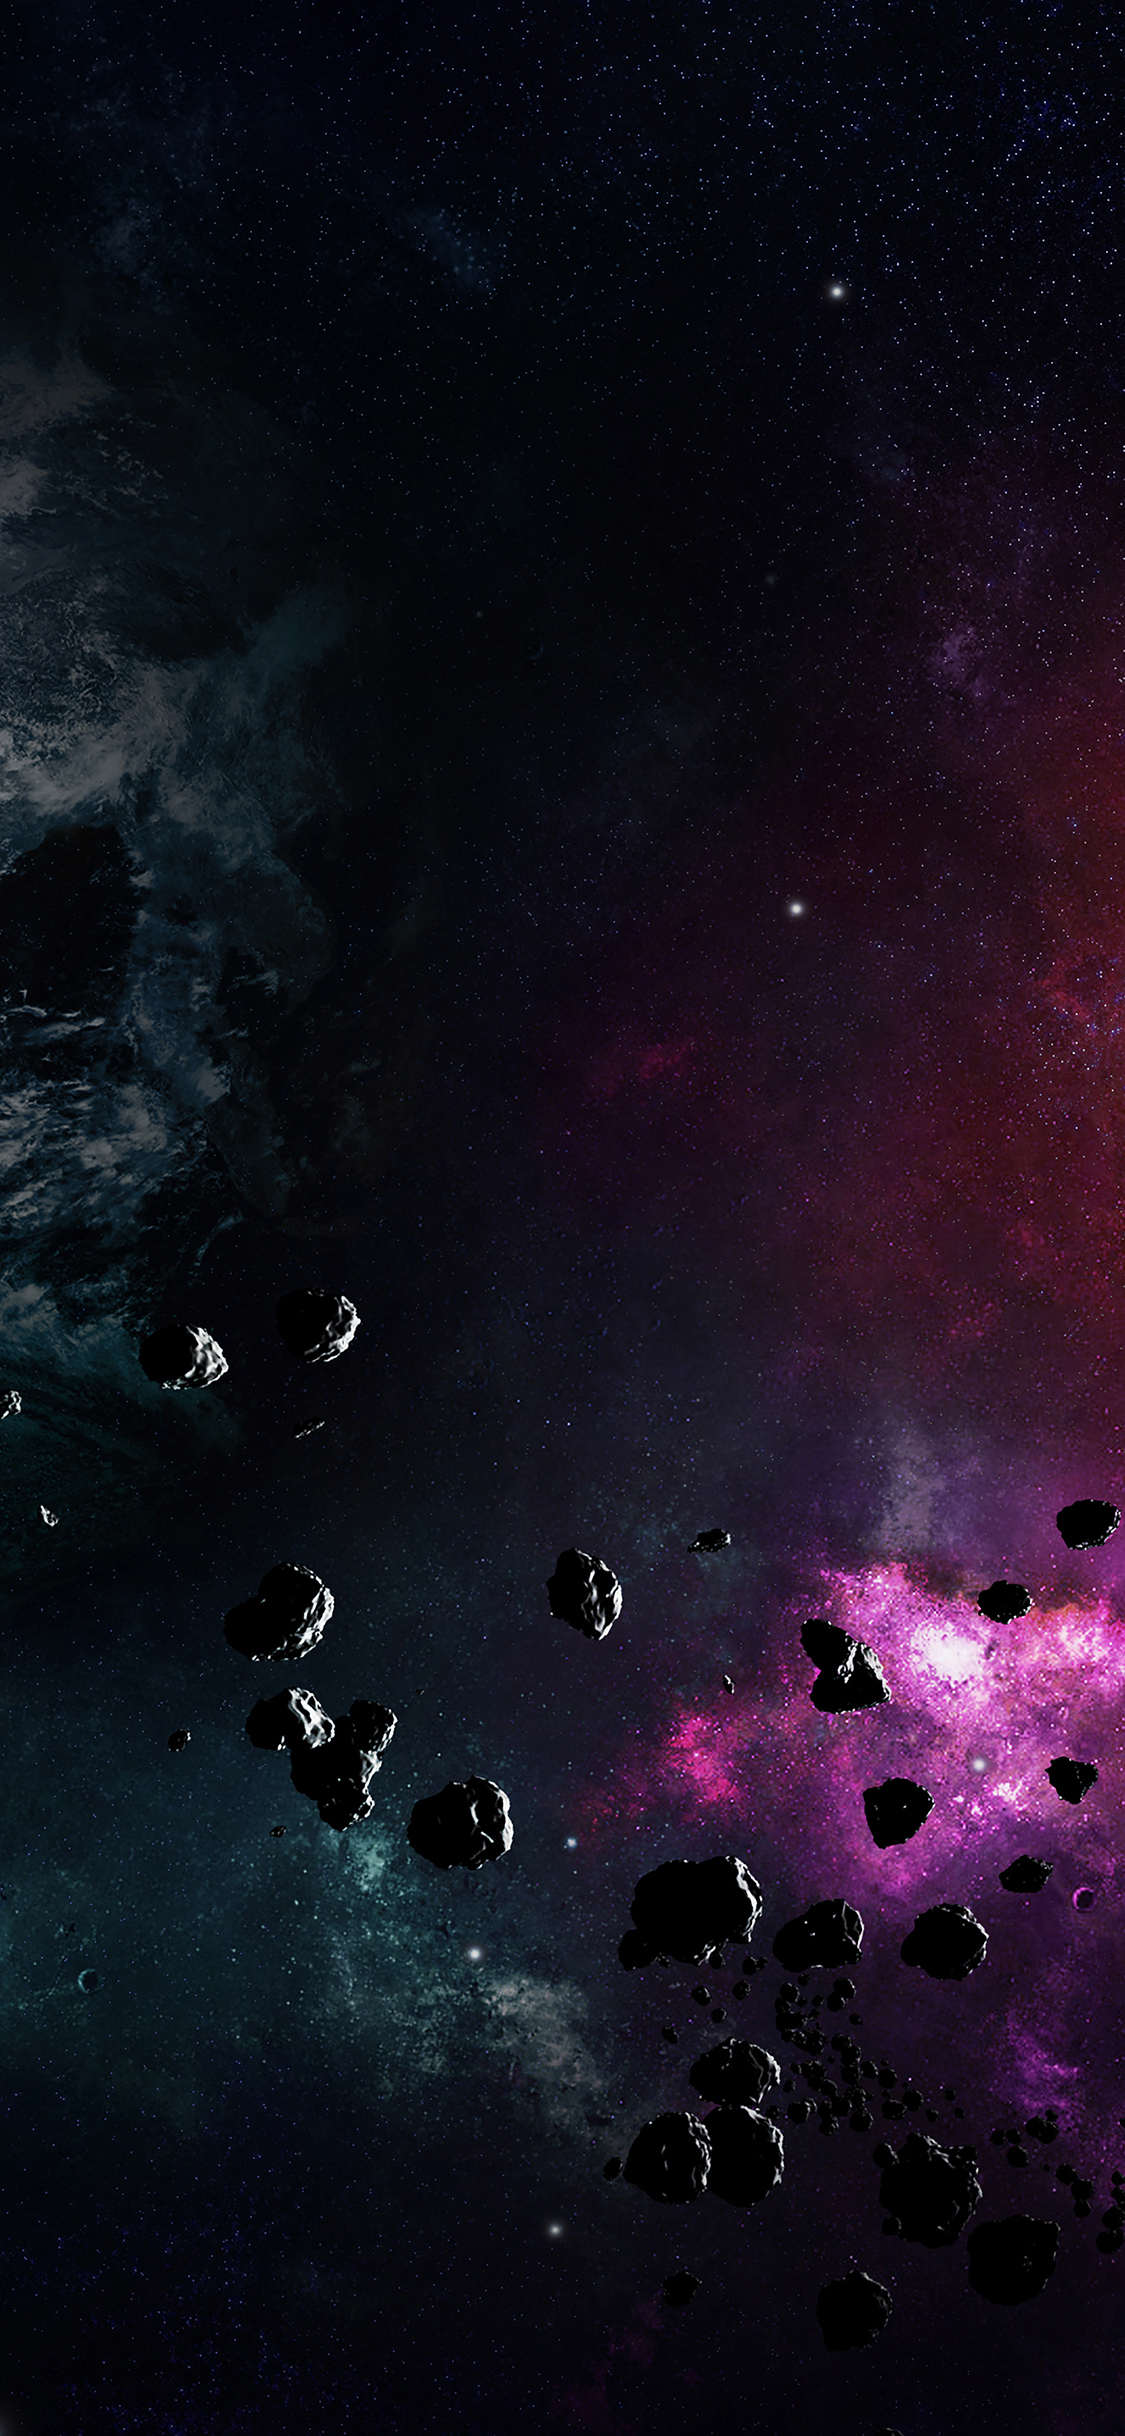 Space Iphone 4k Wallpapers Wallpaper Cave 1828 views   3904 downloads. space iphone 4k wallpapers wallpaper cave